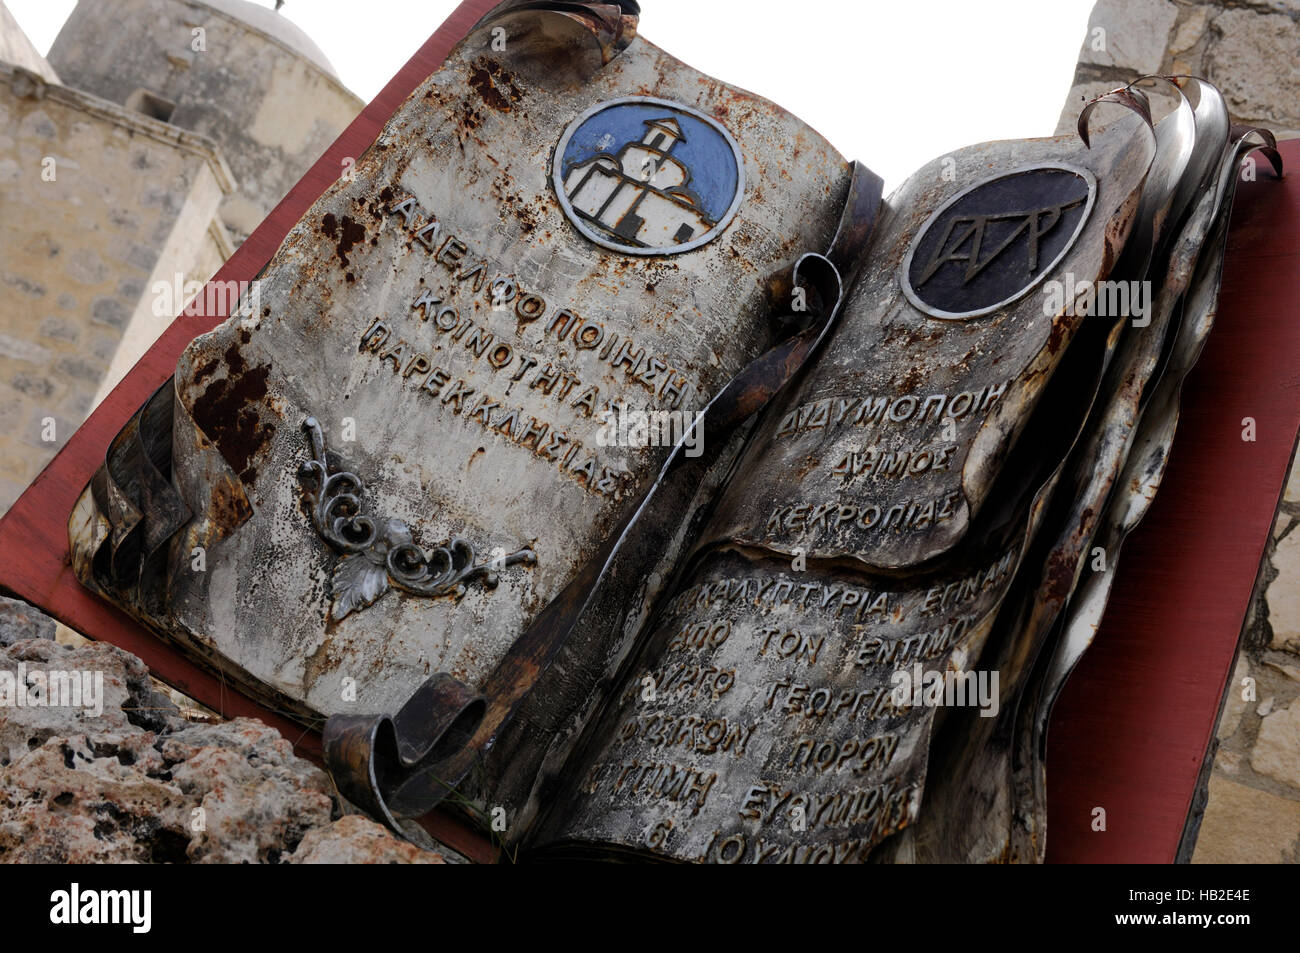 Holy book made of metal with text written in Greek, near Timios Stavros church in Parekklisia village near Limassol, - Stock Image